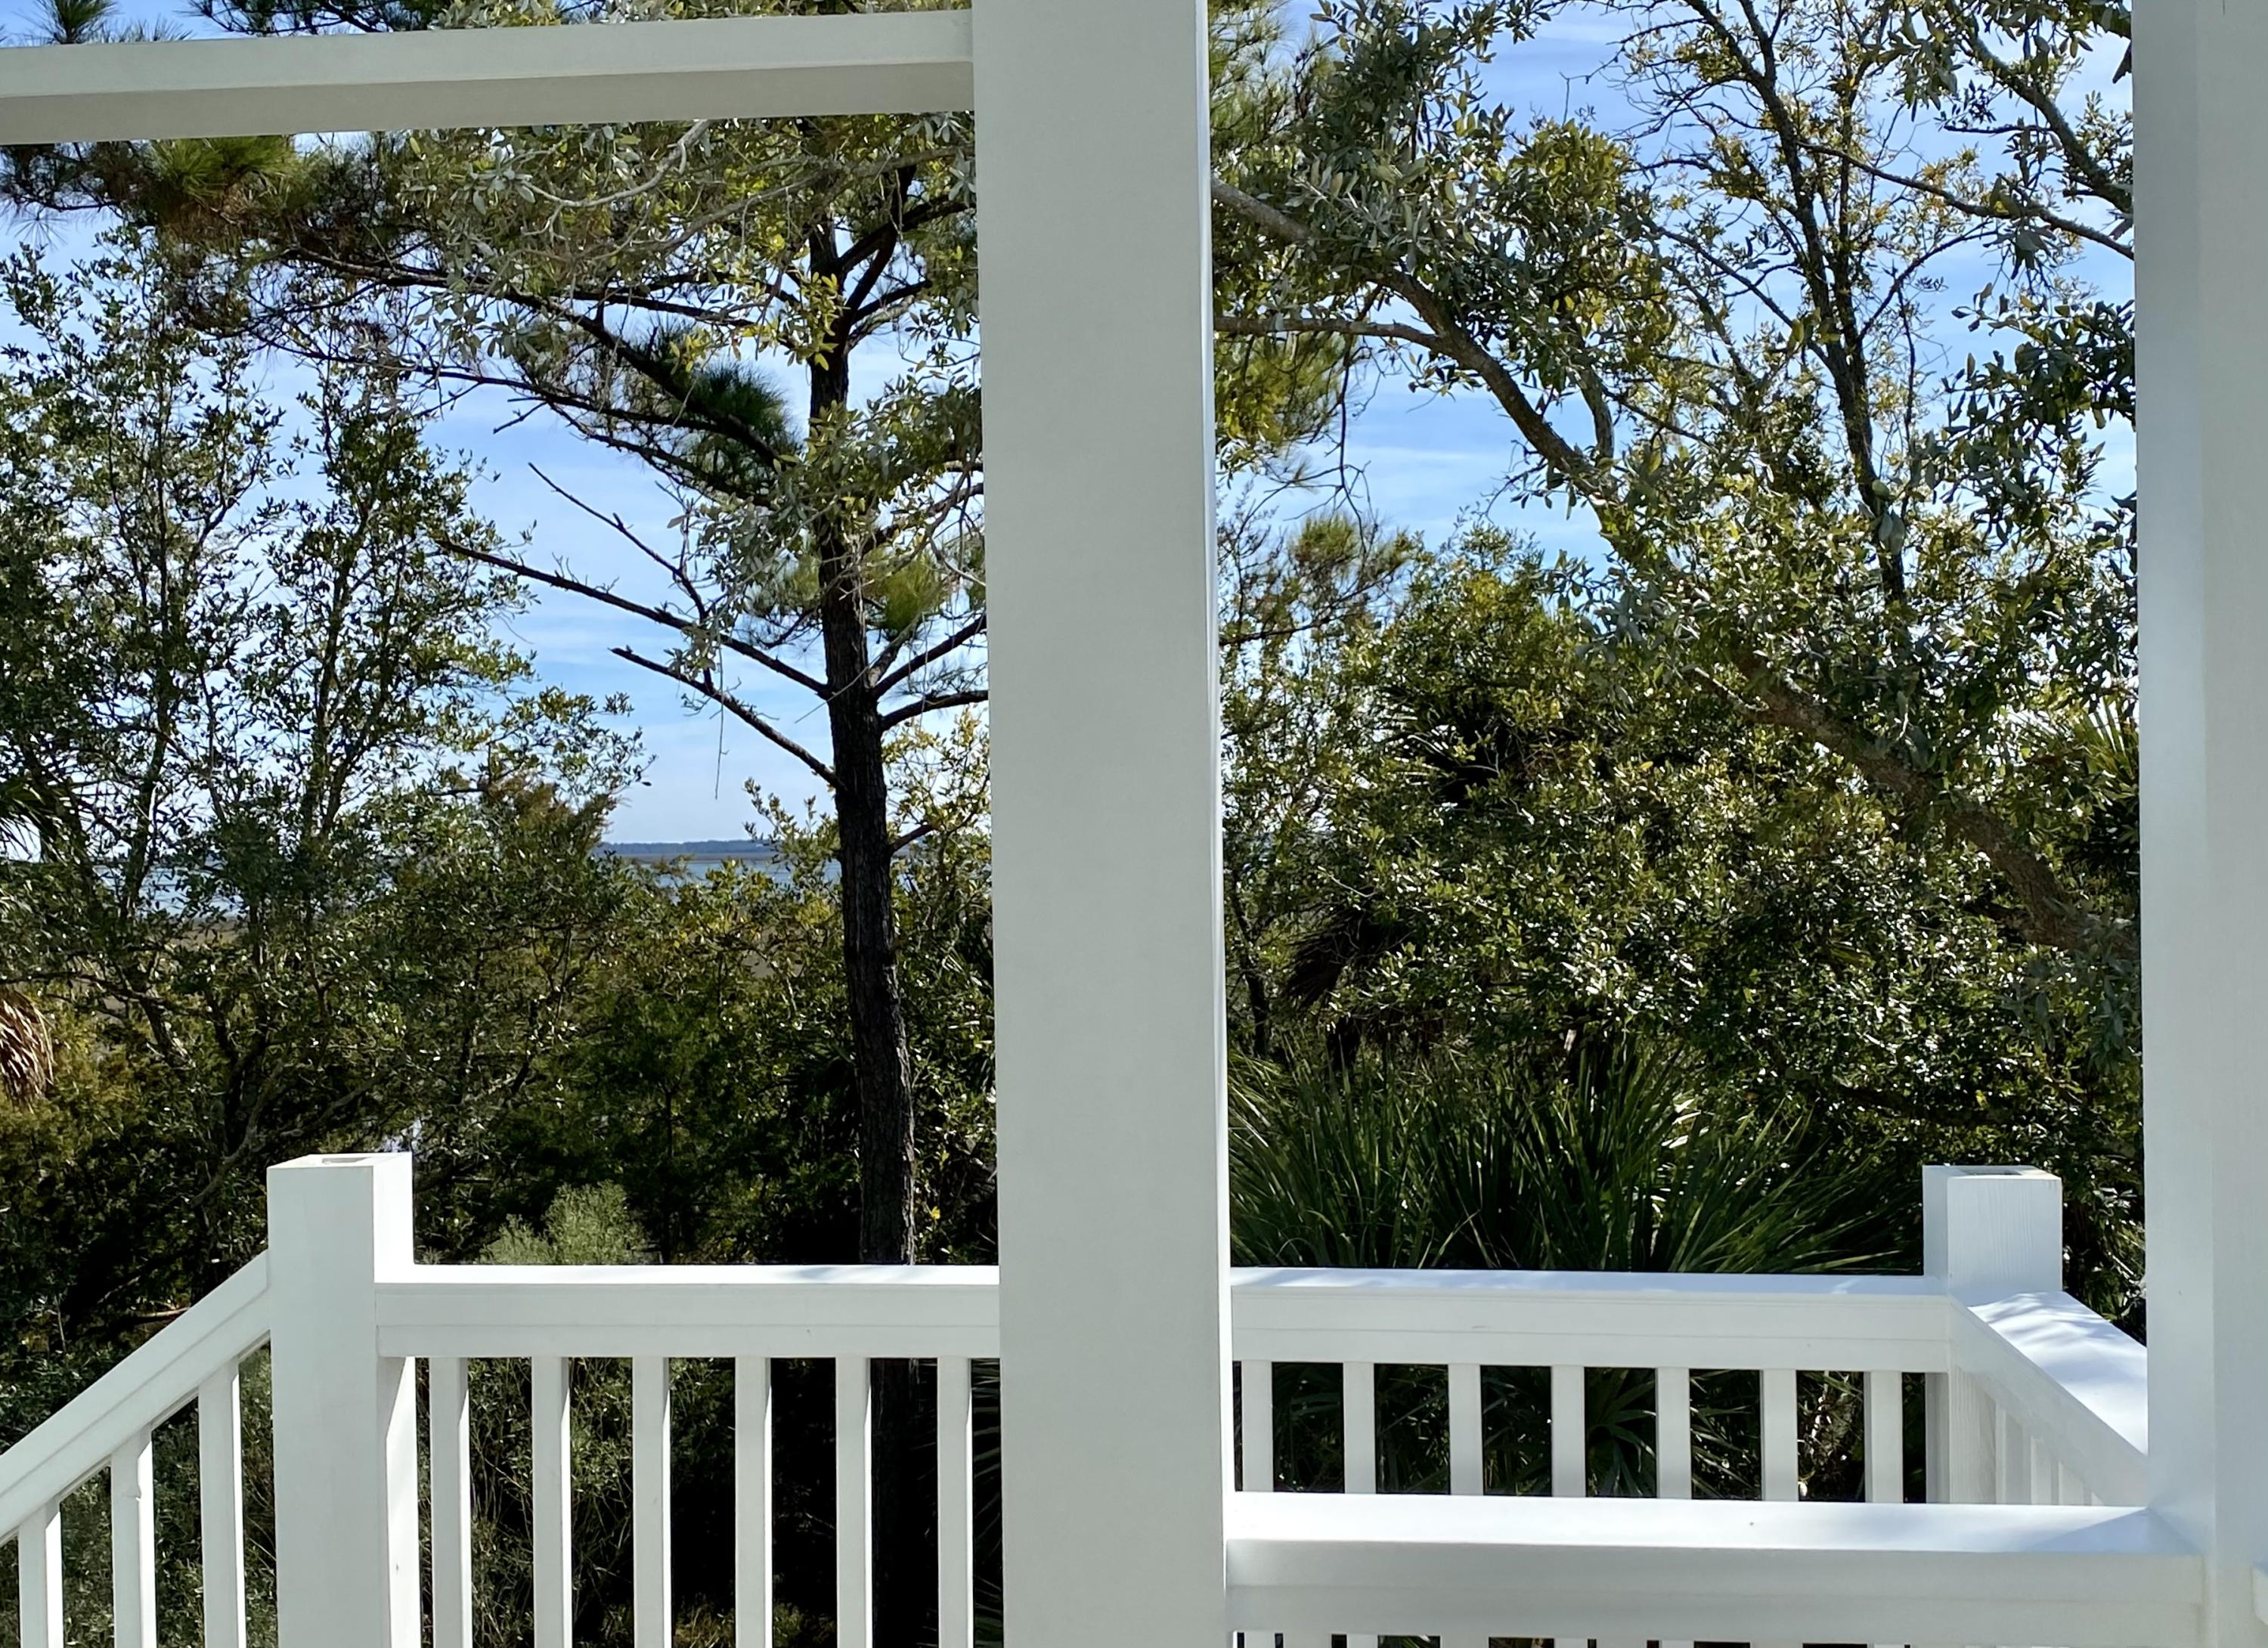 Stratton by the Sound Homes For Sale - 1490 Menhaden, Mount Pleasant, SC - 20